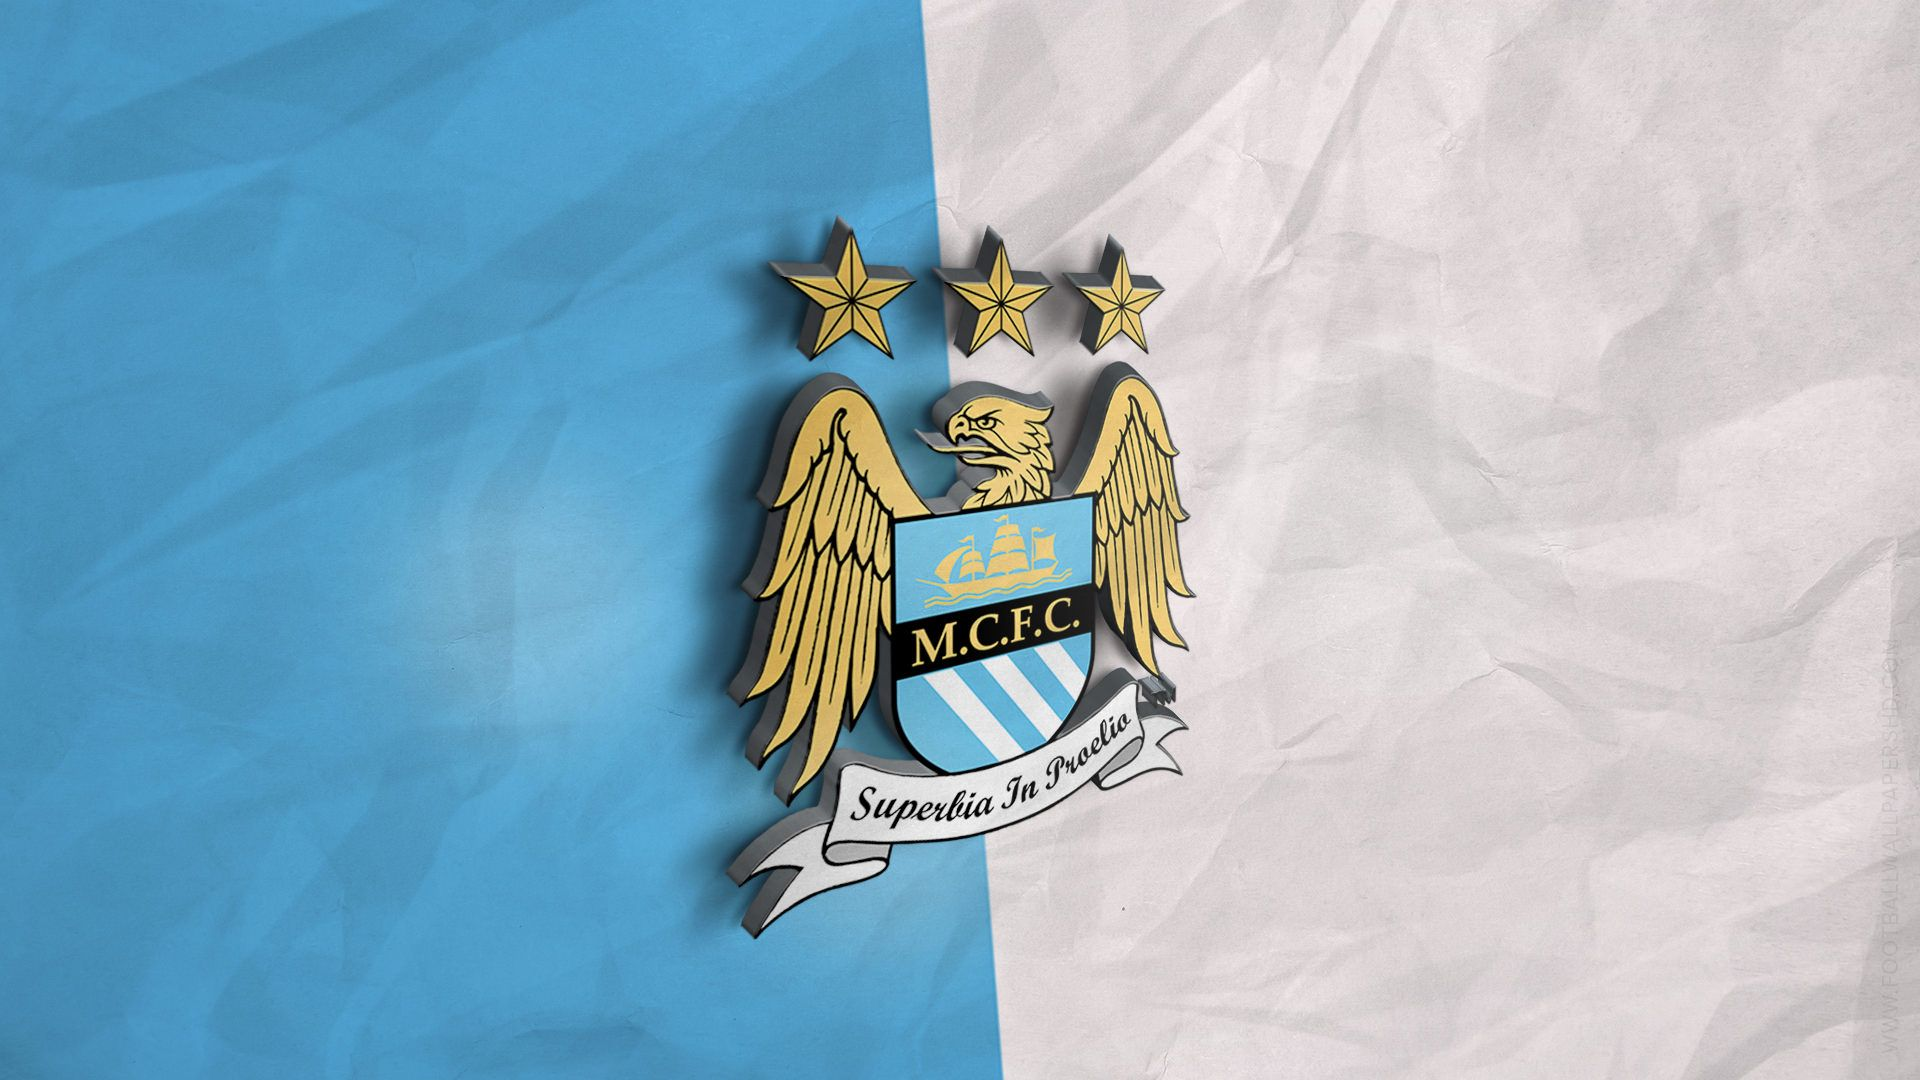 Manchester City 3d Logo Wallpaper Football Wallpapers Hd Manchester City Wallpaper Football Wallpaper City Wallpaper